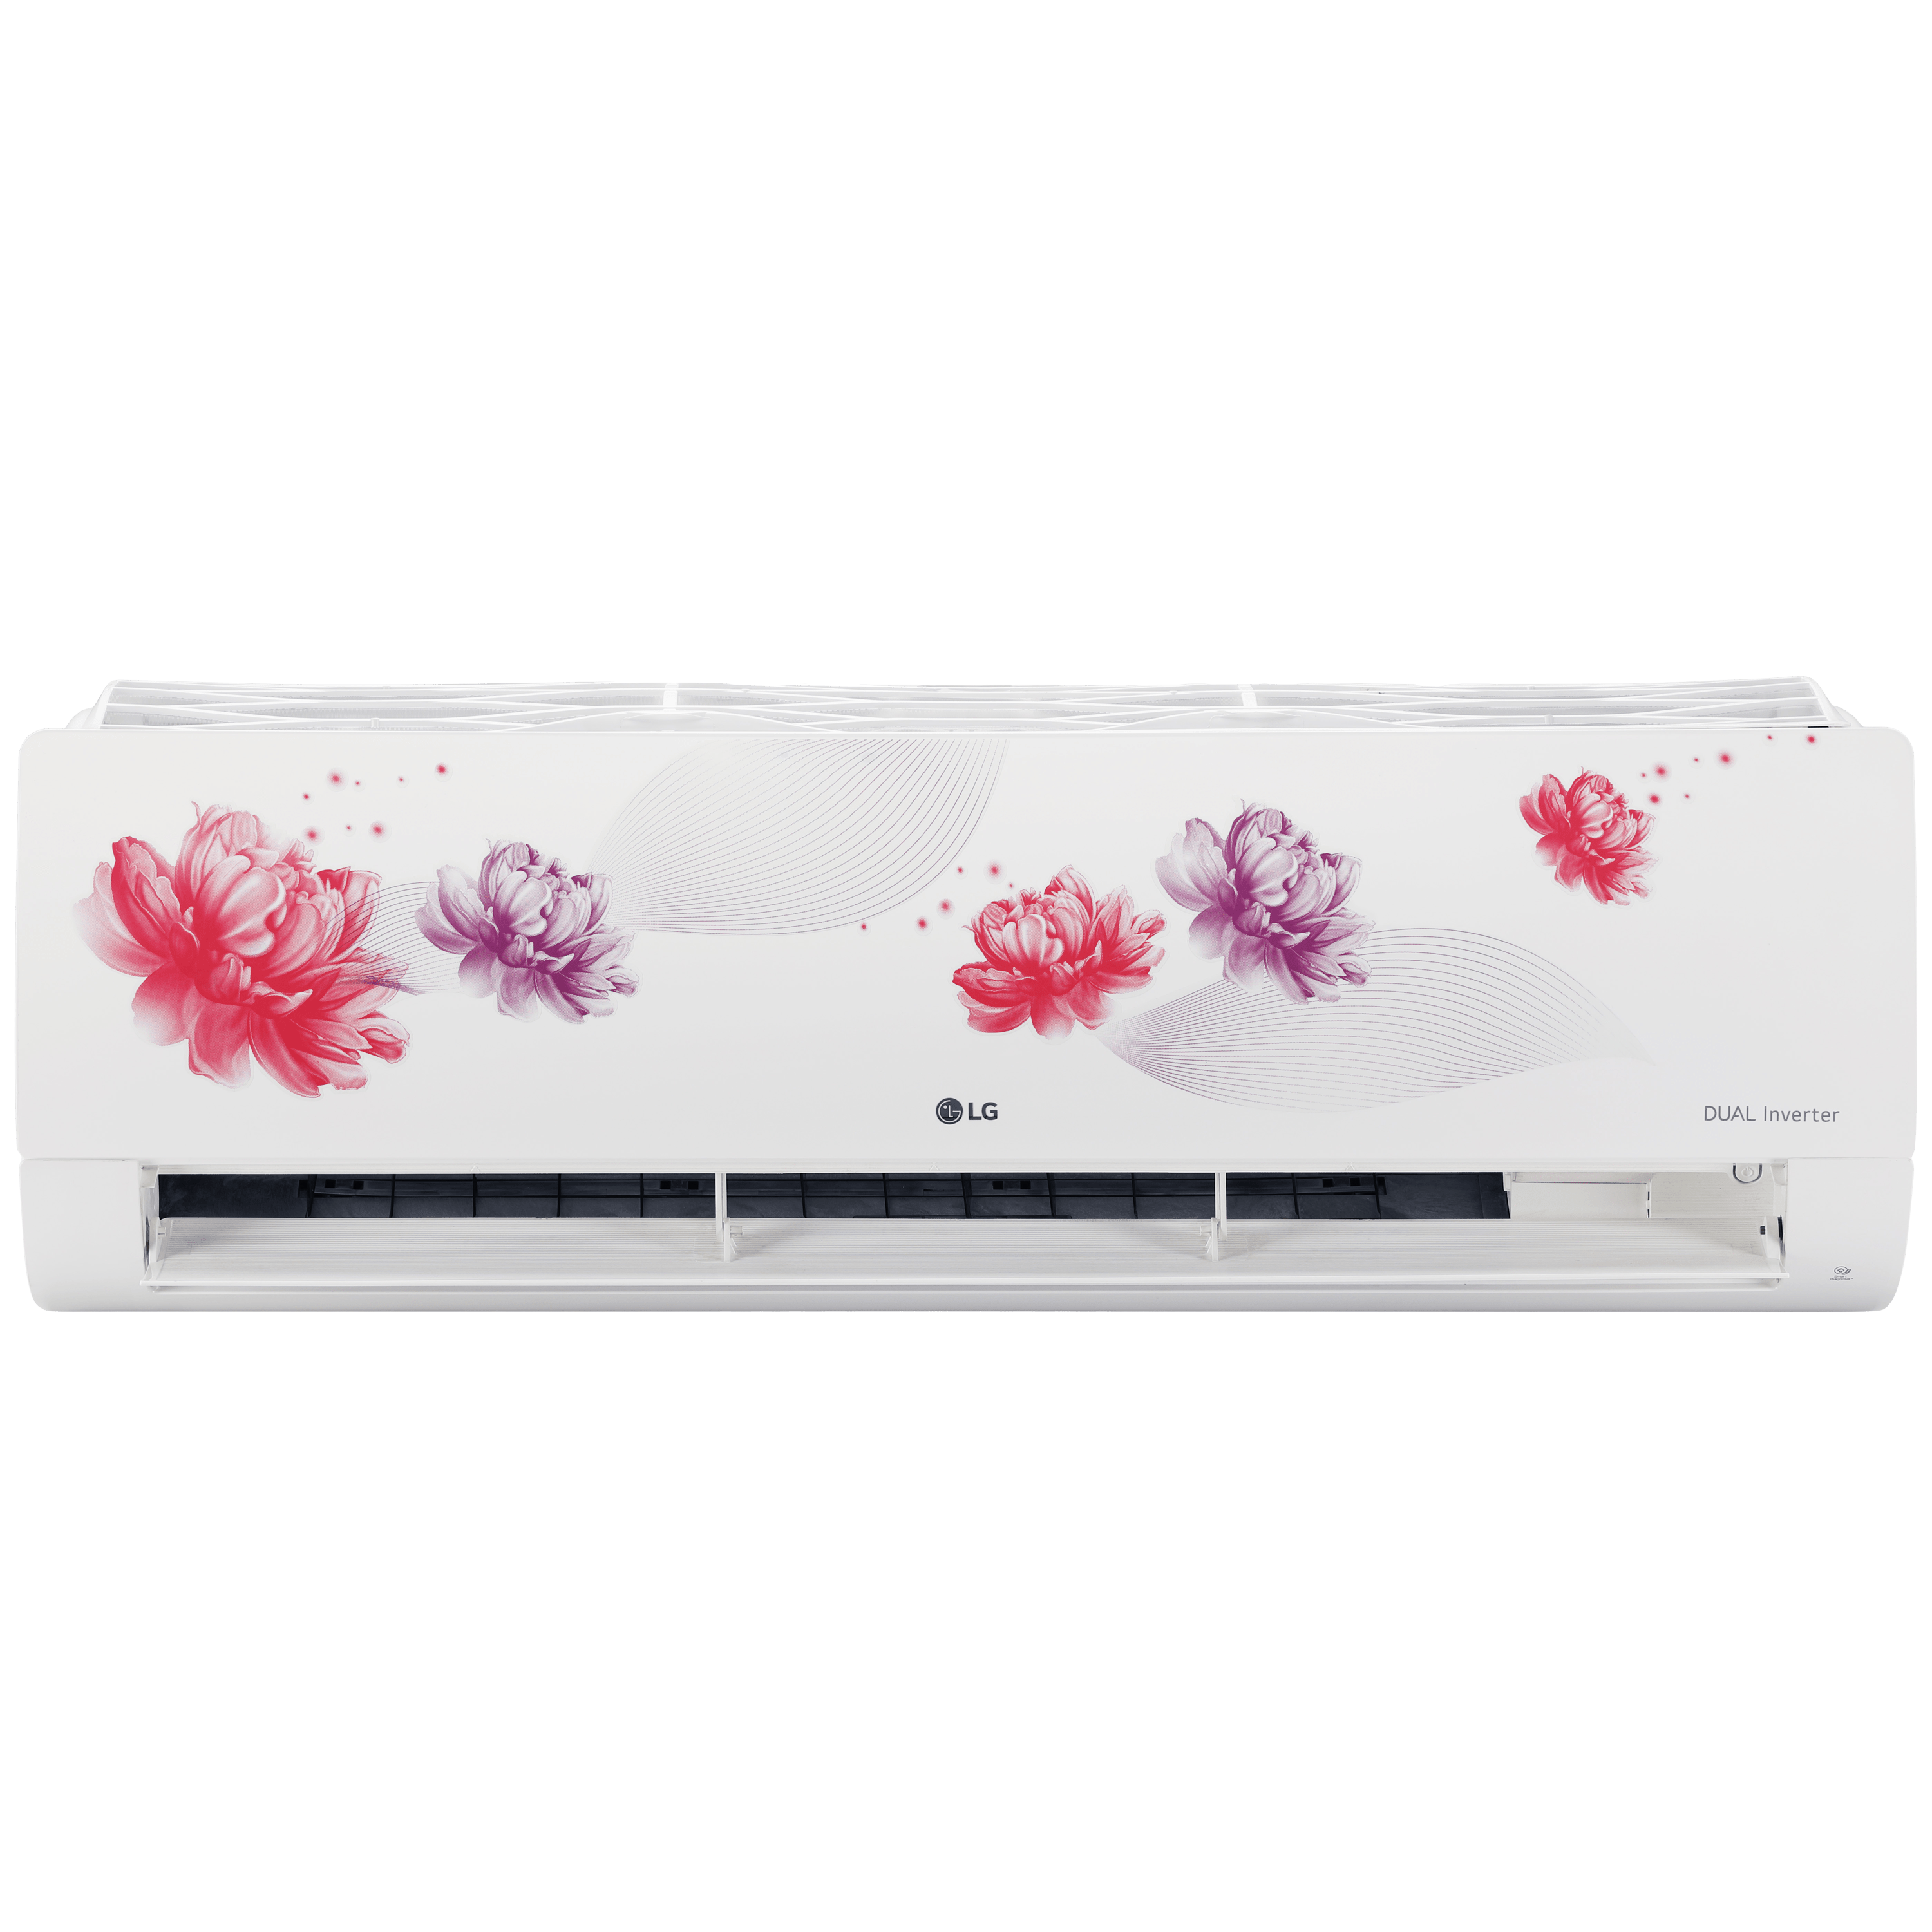 LG 1.5 Ton 5 Star Inverter Split AC (Air Purification Function, Copper Condenser, MS-Q18FNZD, White)